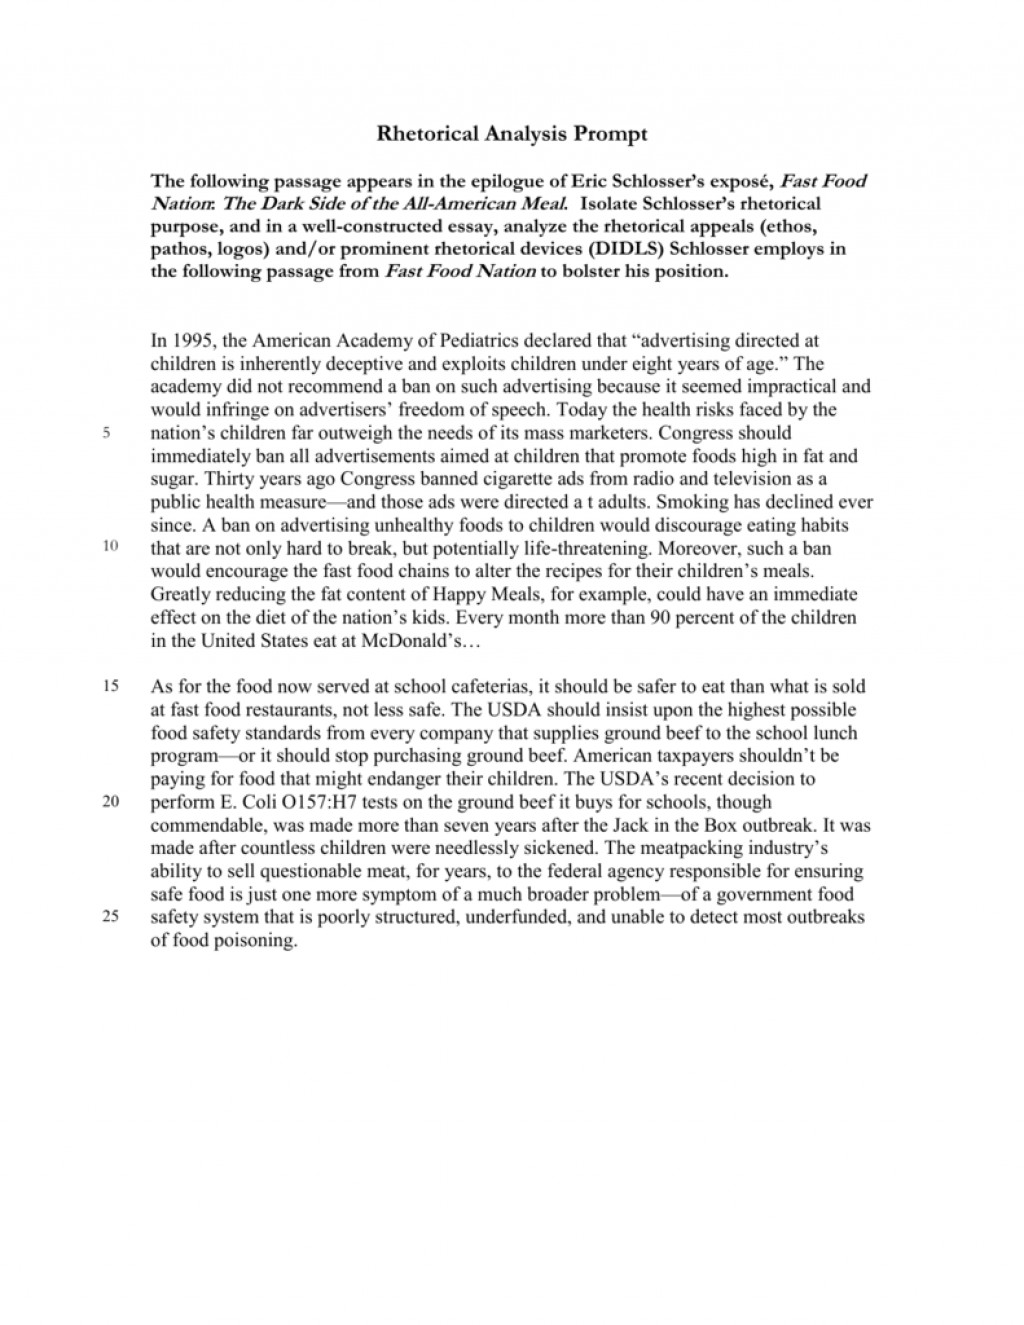 018 Fast Food Essay Example 008033612 1 Stunning Topics Argumentative Introduction Titles Large